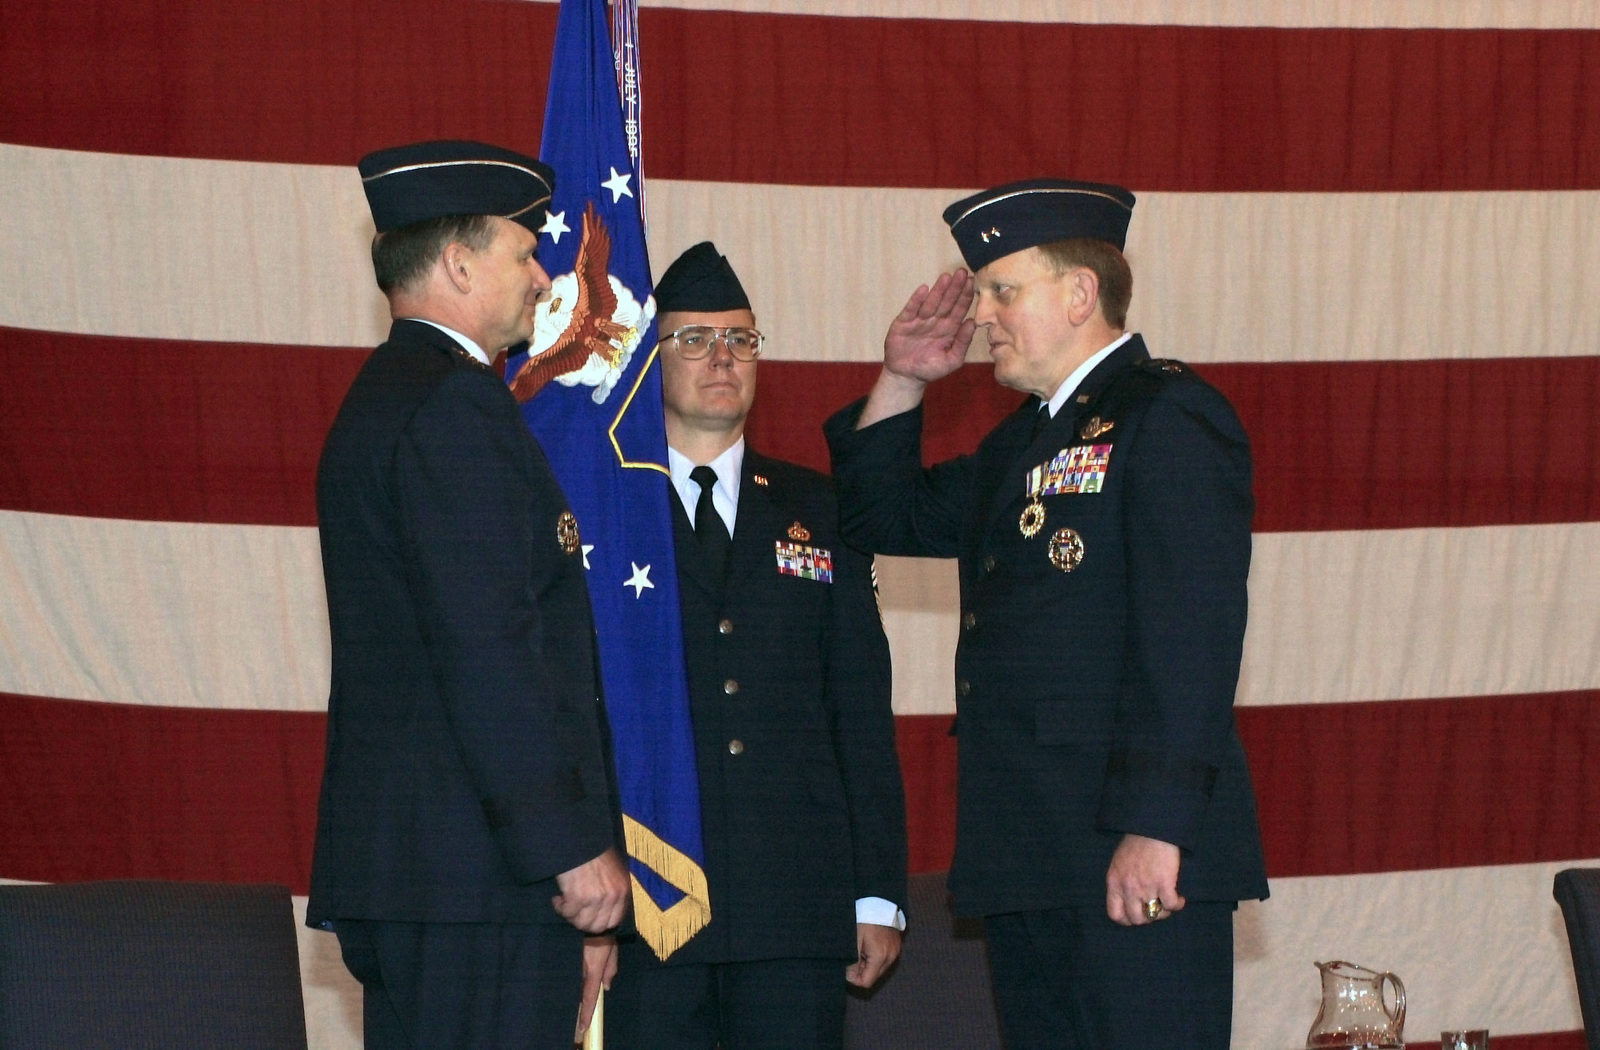 US Air Force (USAF) General (GEN) Gregory S. Martin (left), Commander, US Air Forces in Europe (USAFE), receives a salute from USAF Major General (MGEN) Major General Kenneth W. Hess, Commander, 3rd Air Force, after MGEN Hess was presented with the Distinguished Service Medal during the 3rd Air Force Change of Command Ceremony, held at Royal Air Force (RAF) Mildenhall, United Kingdom (UK)